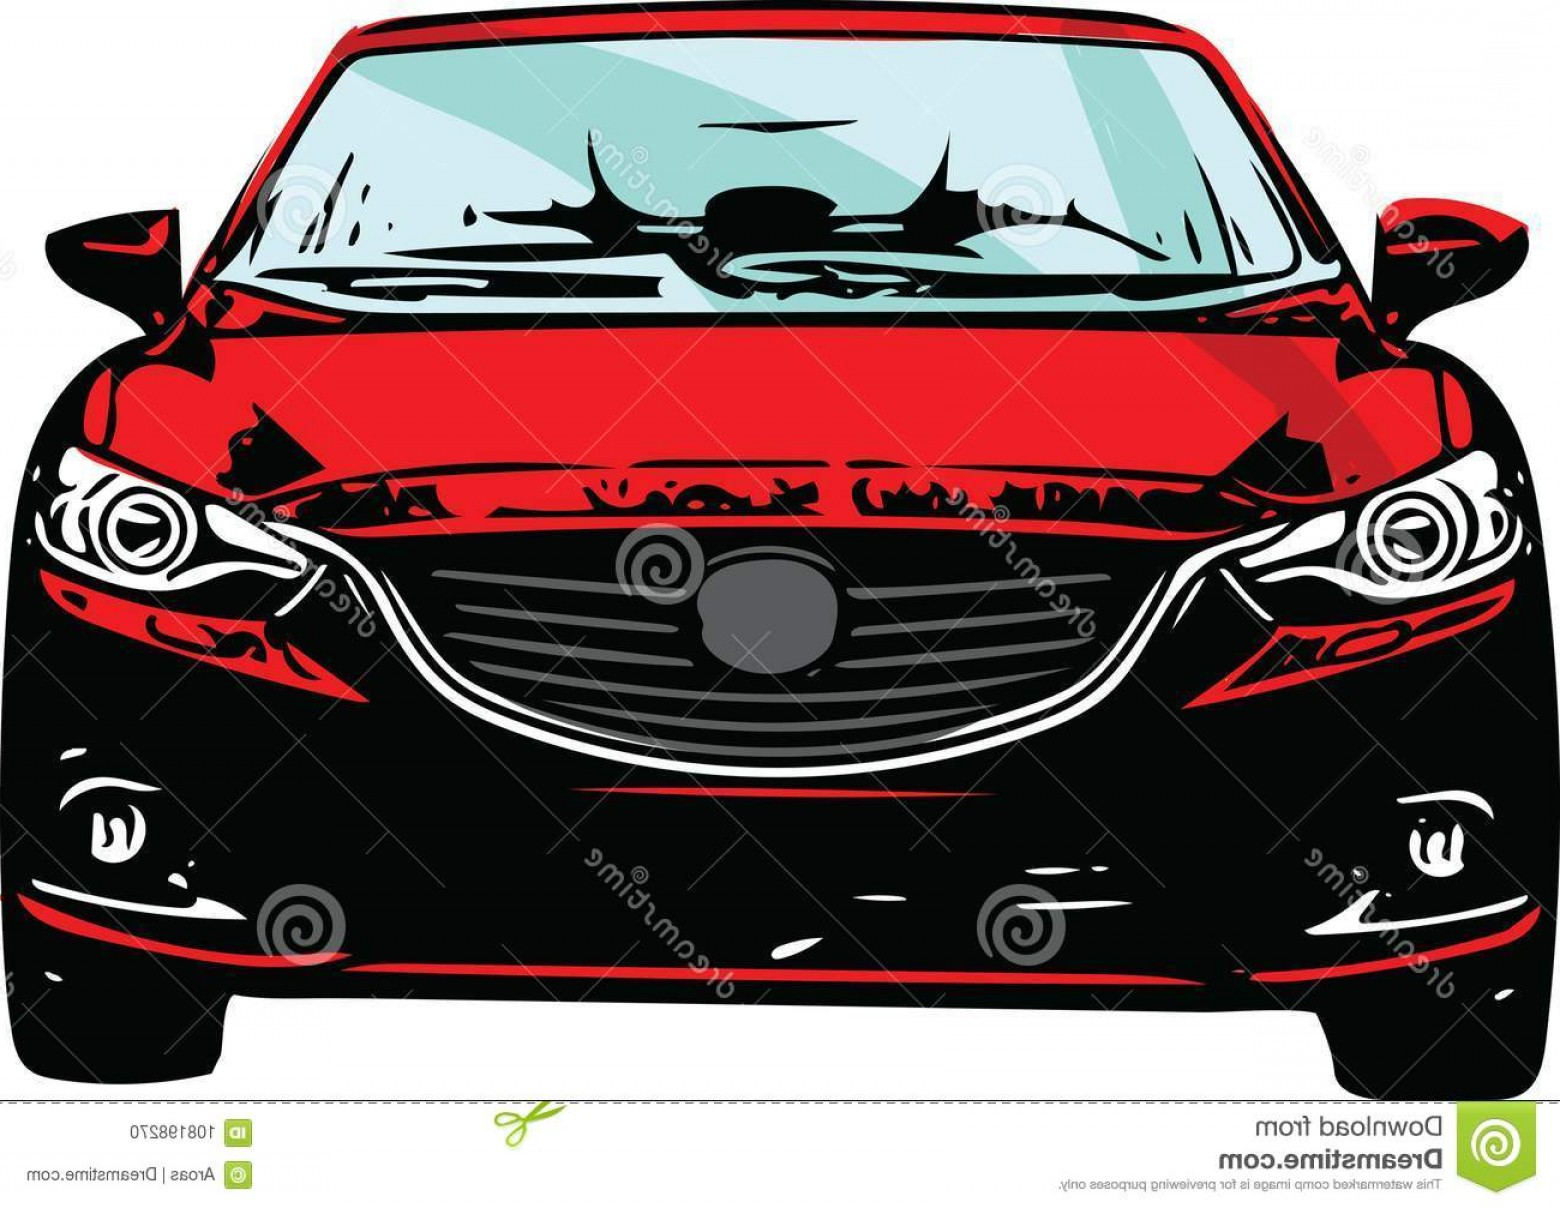 Bumper Barbell Vector: Concept Red Sportscar Vehicle Silhouette Vector Illustration Red Sportscar Vehicle Silhouette Image